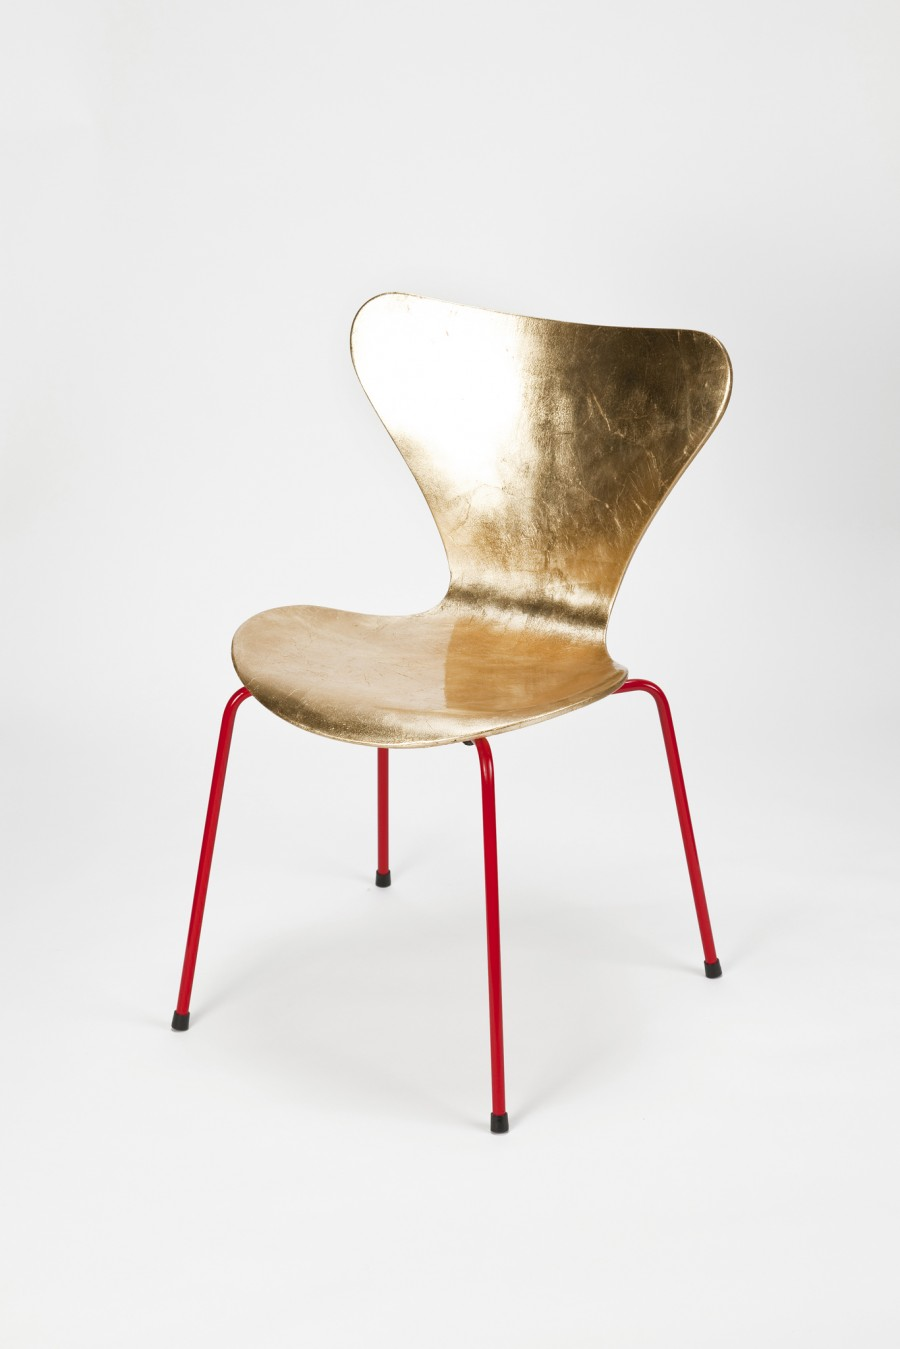 Eames and Jacobsen Go Goldy Gold by Reha Okay - on flodeau.com 01